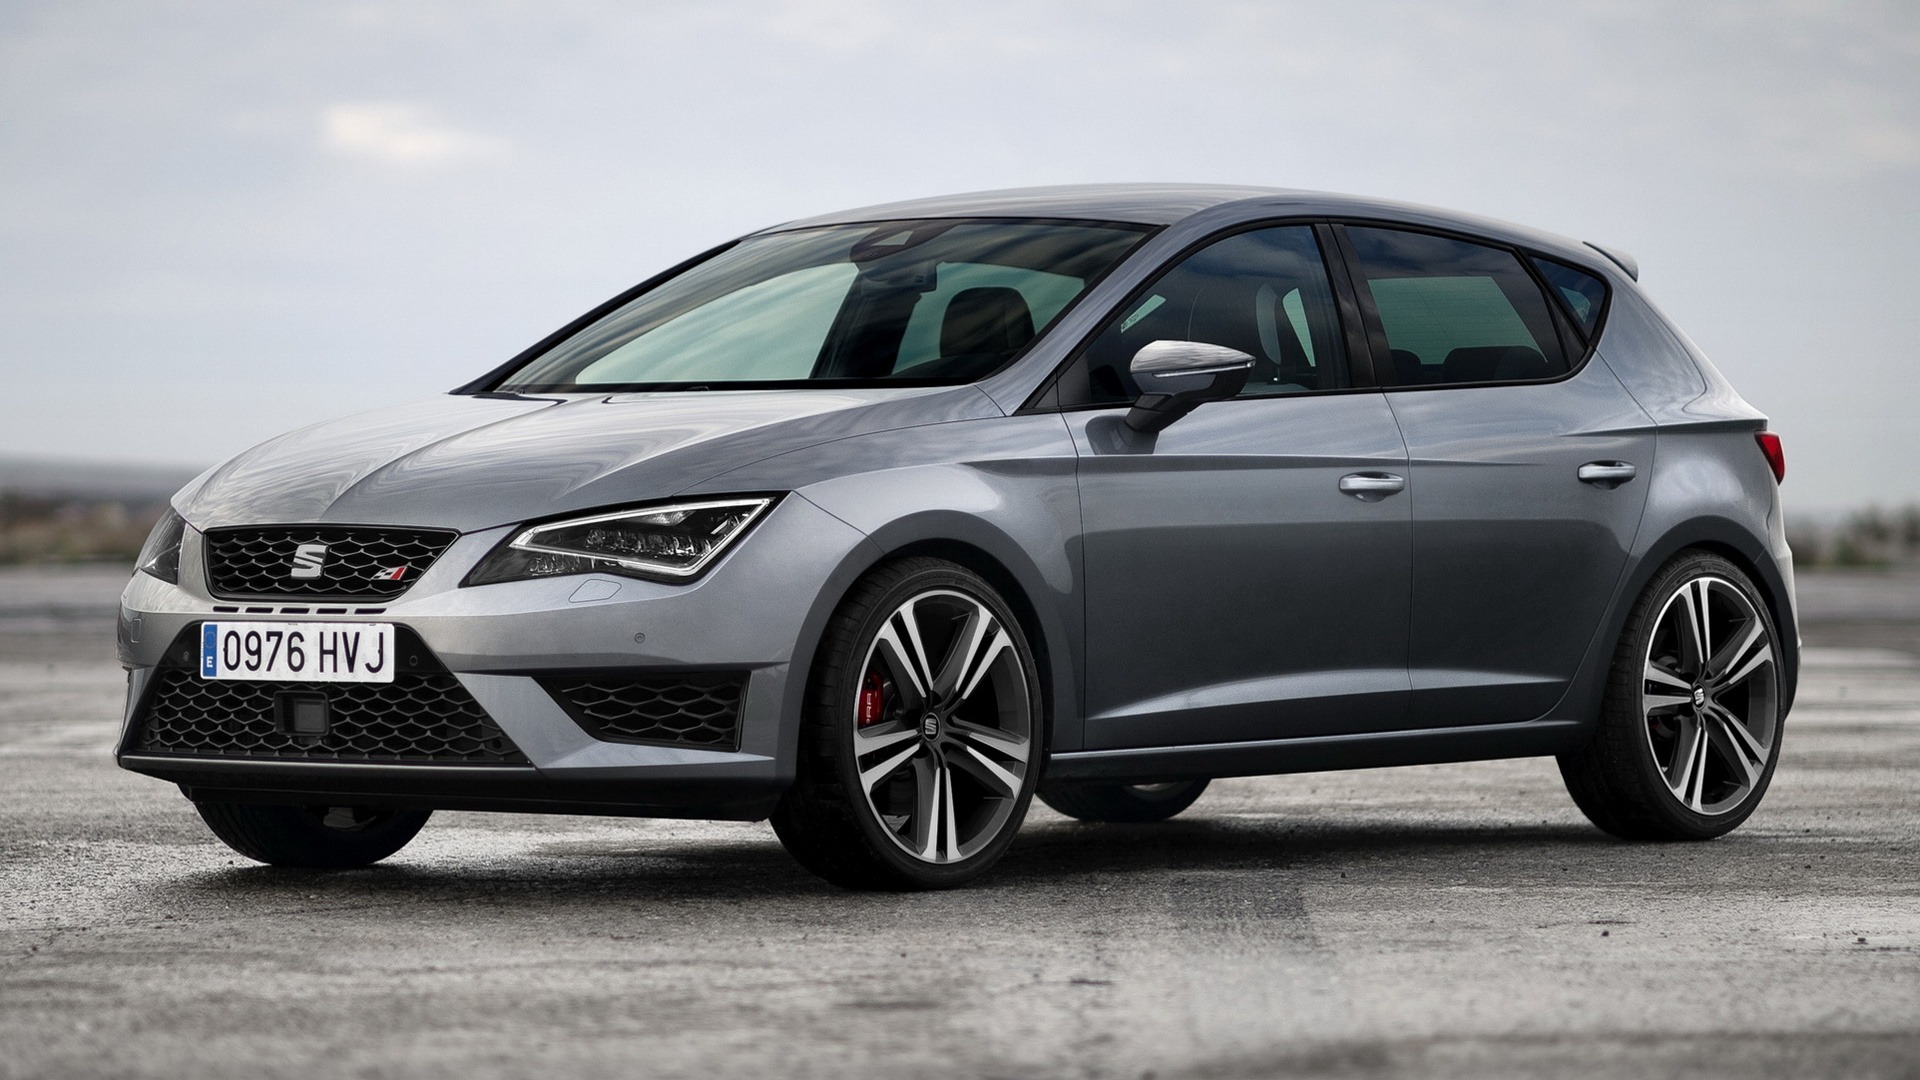 seat leon cupra 280 2014 wallpapers and hd images car pixel. Black Bedroom Furniture Sets. Home Design Ideas